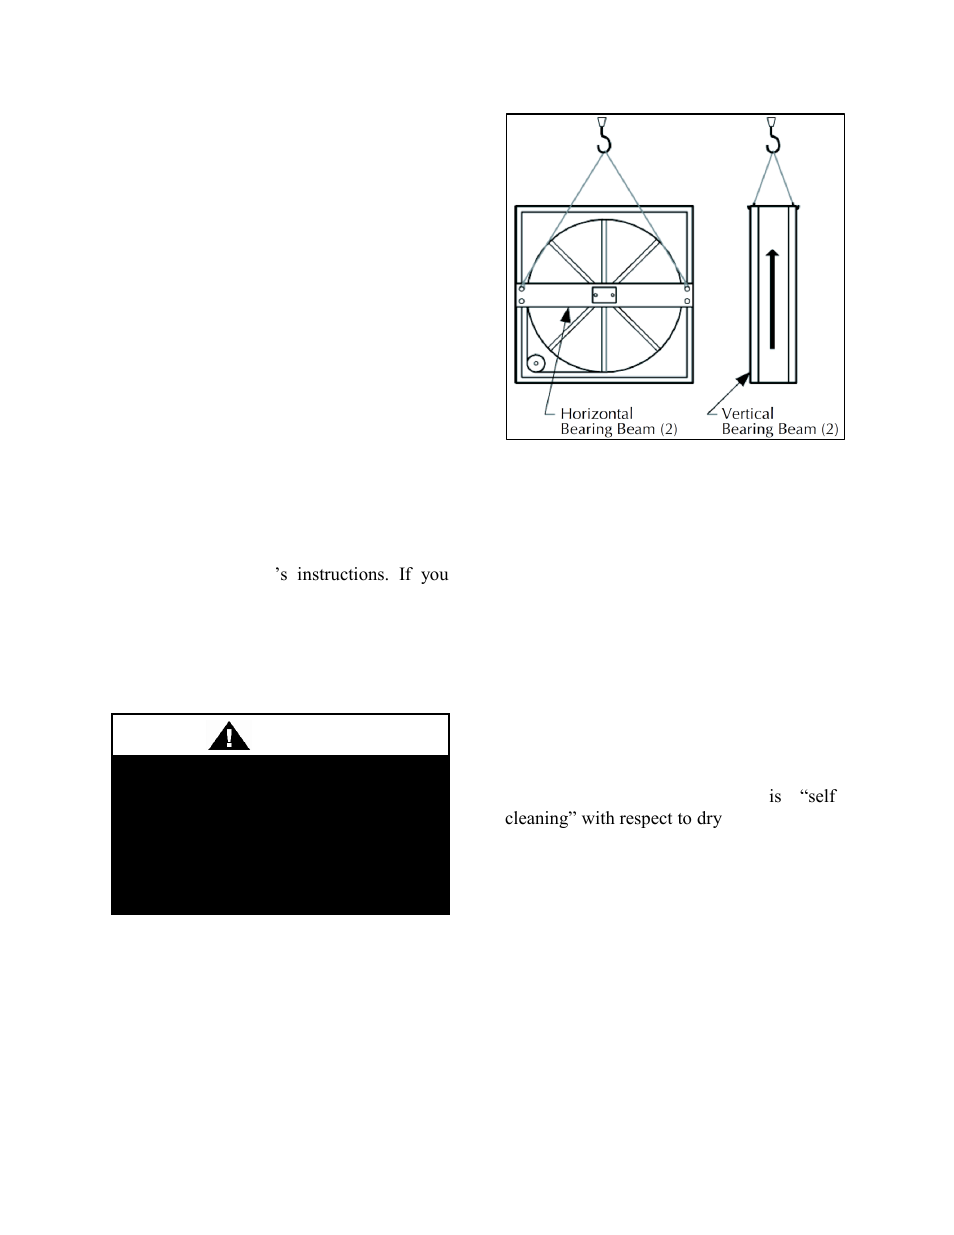 Warning | AAON RN-140 User Manual | Page 65 / 116 on